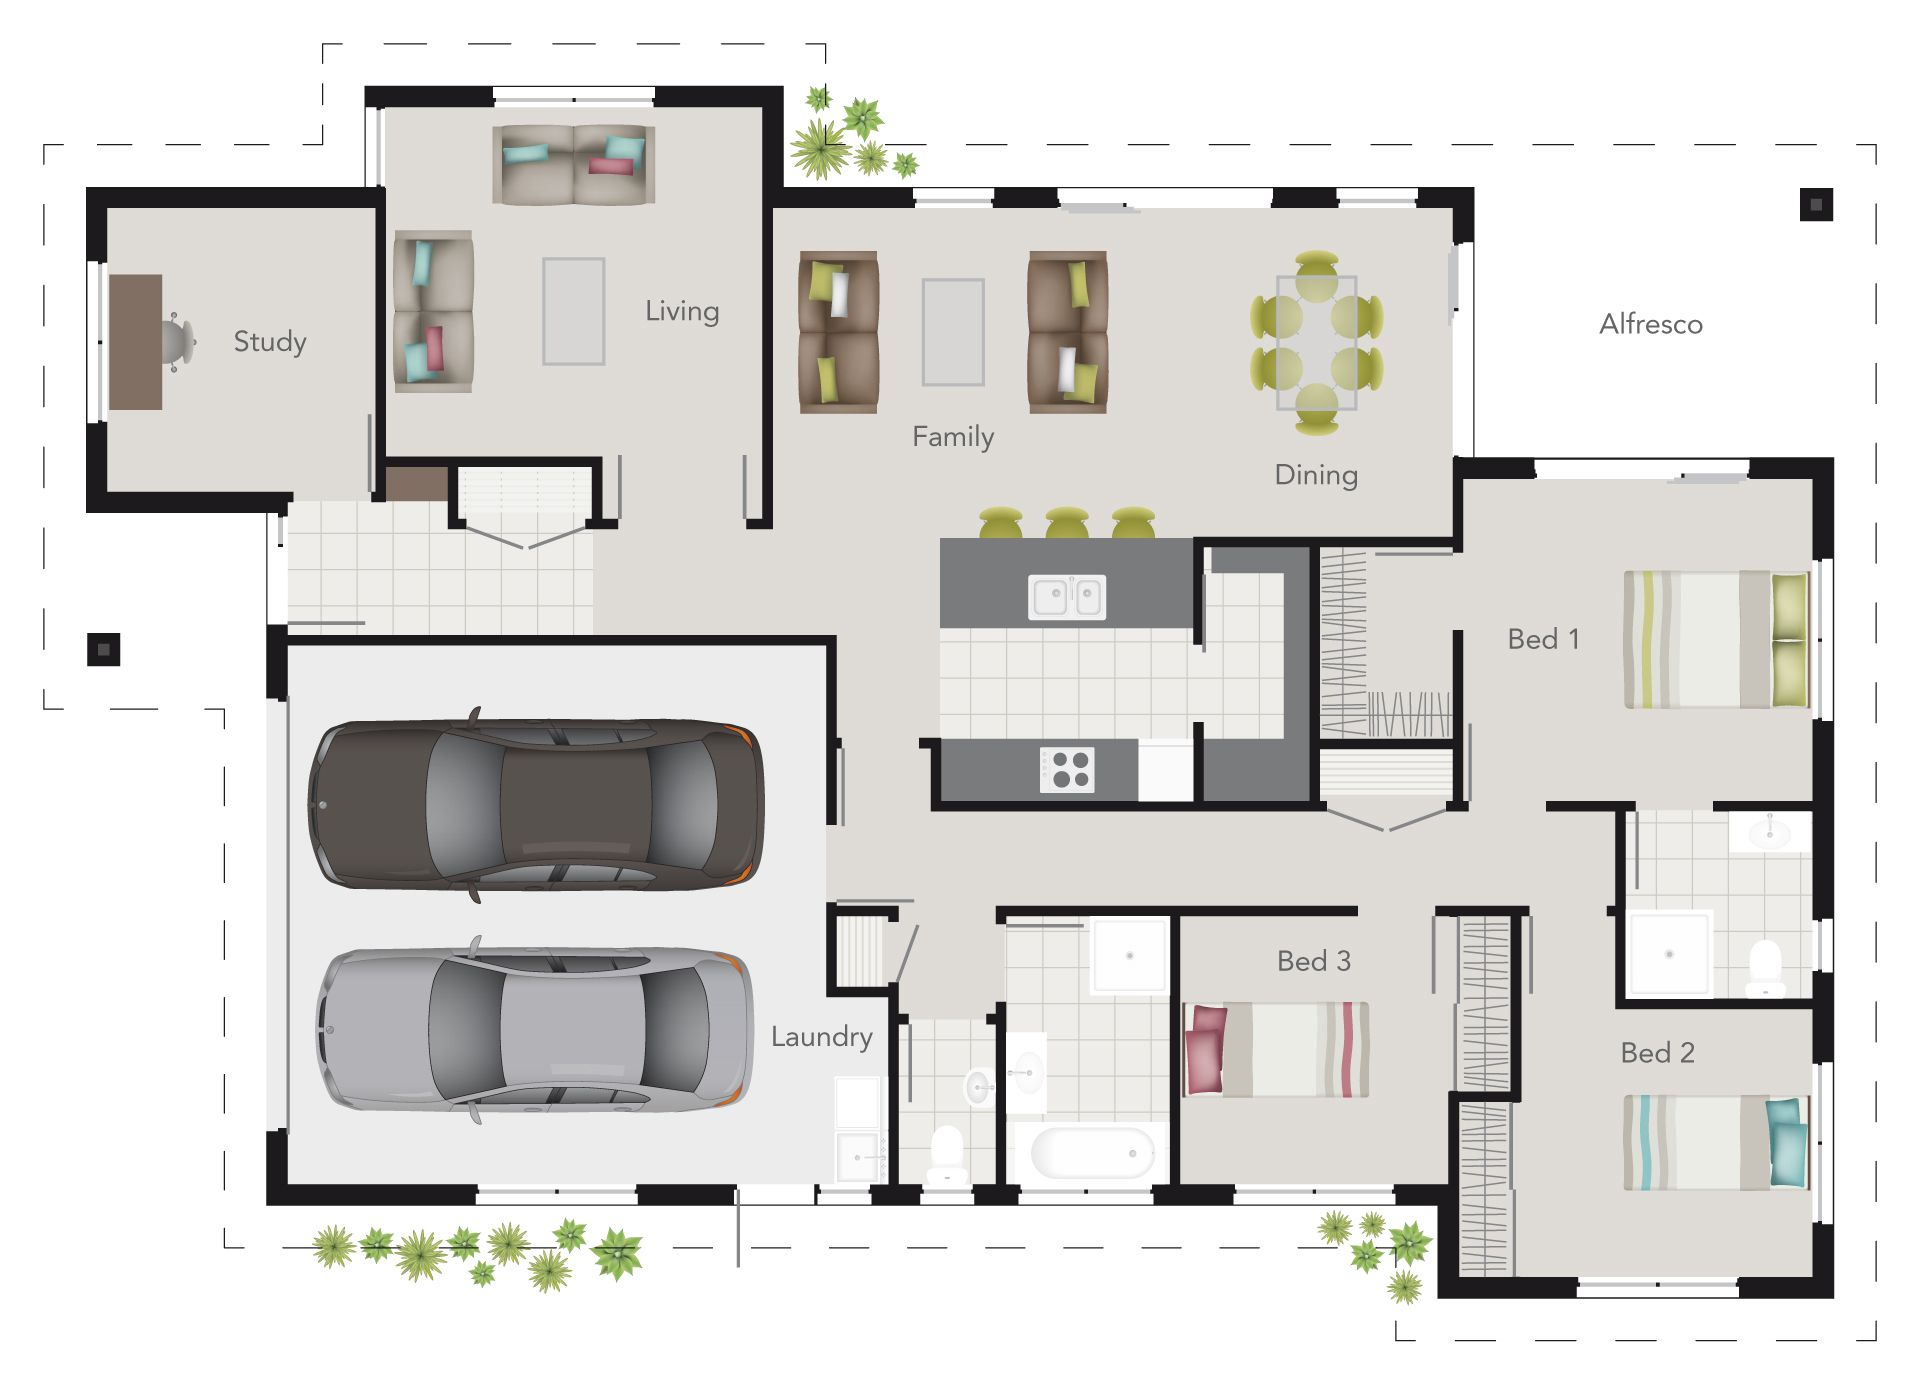 G j gardner wright plan 3 bedroom floor plan with study for Living room floor plan